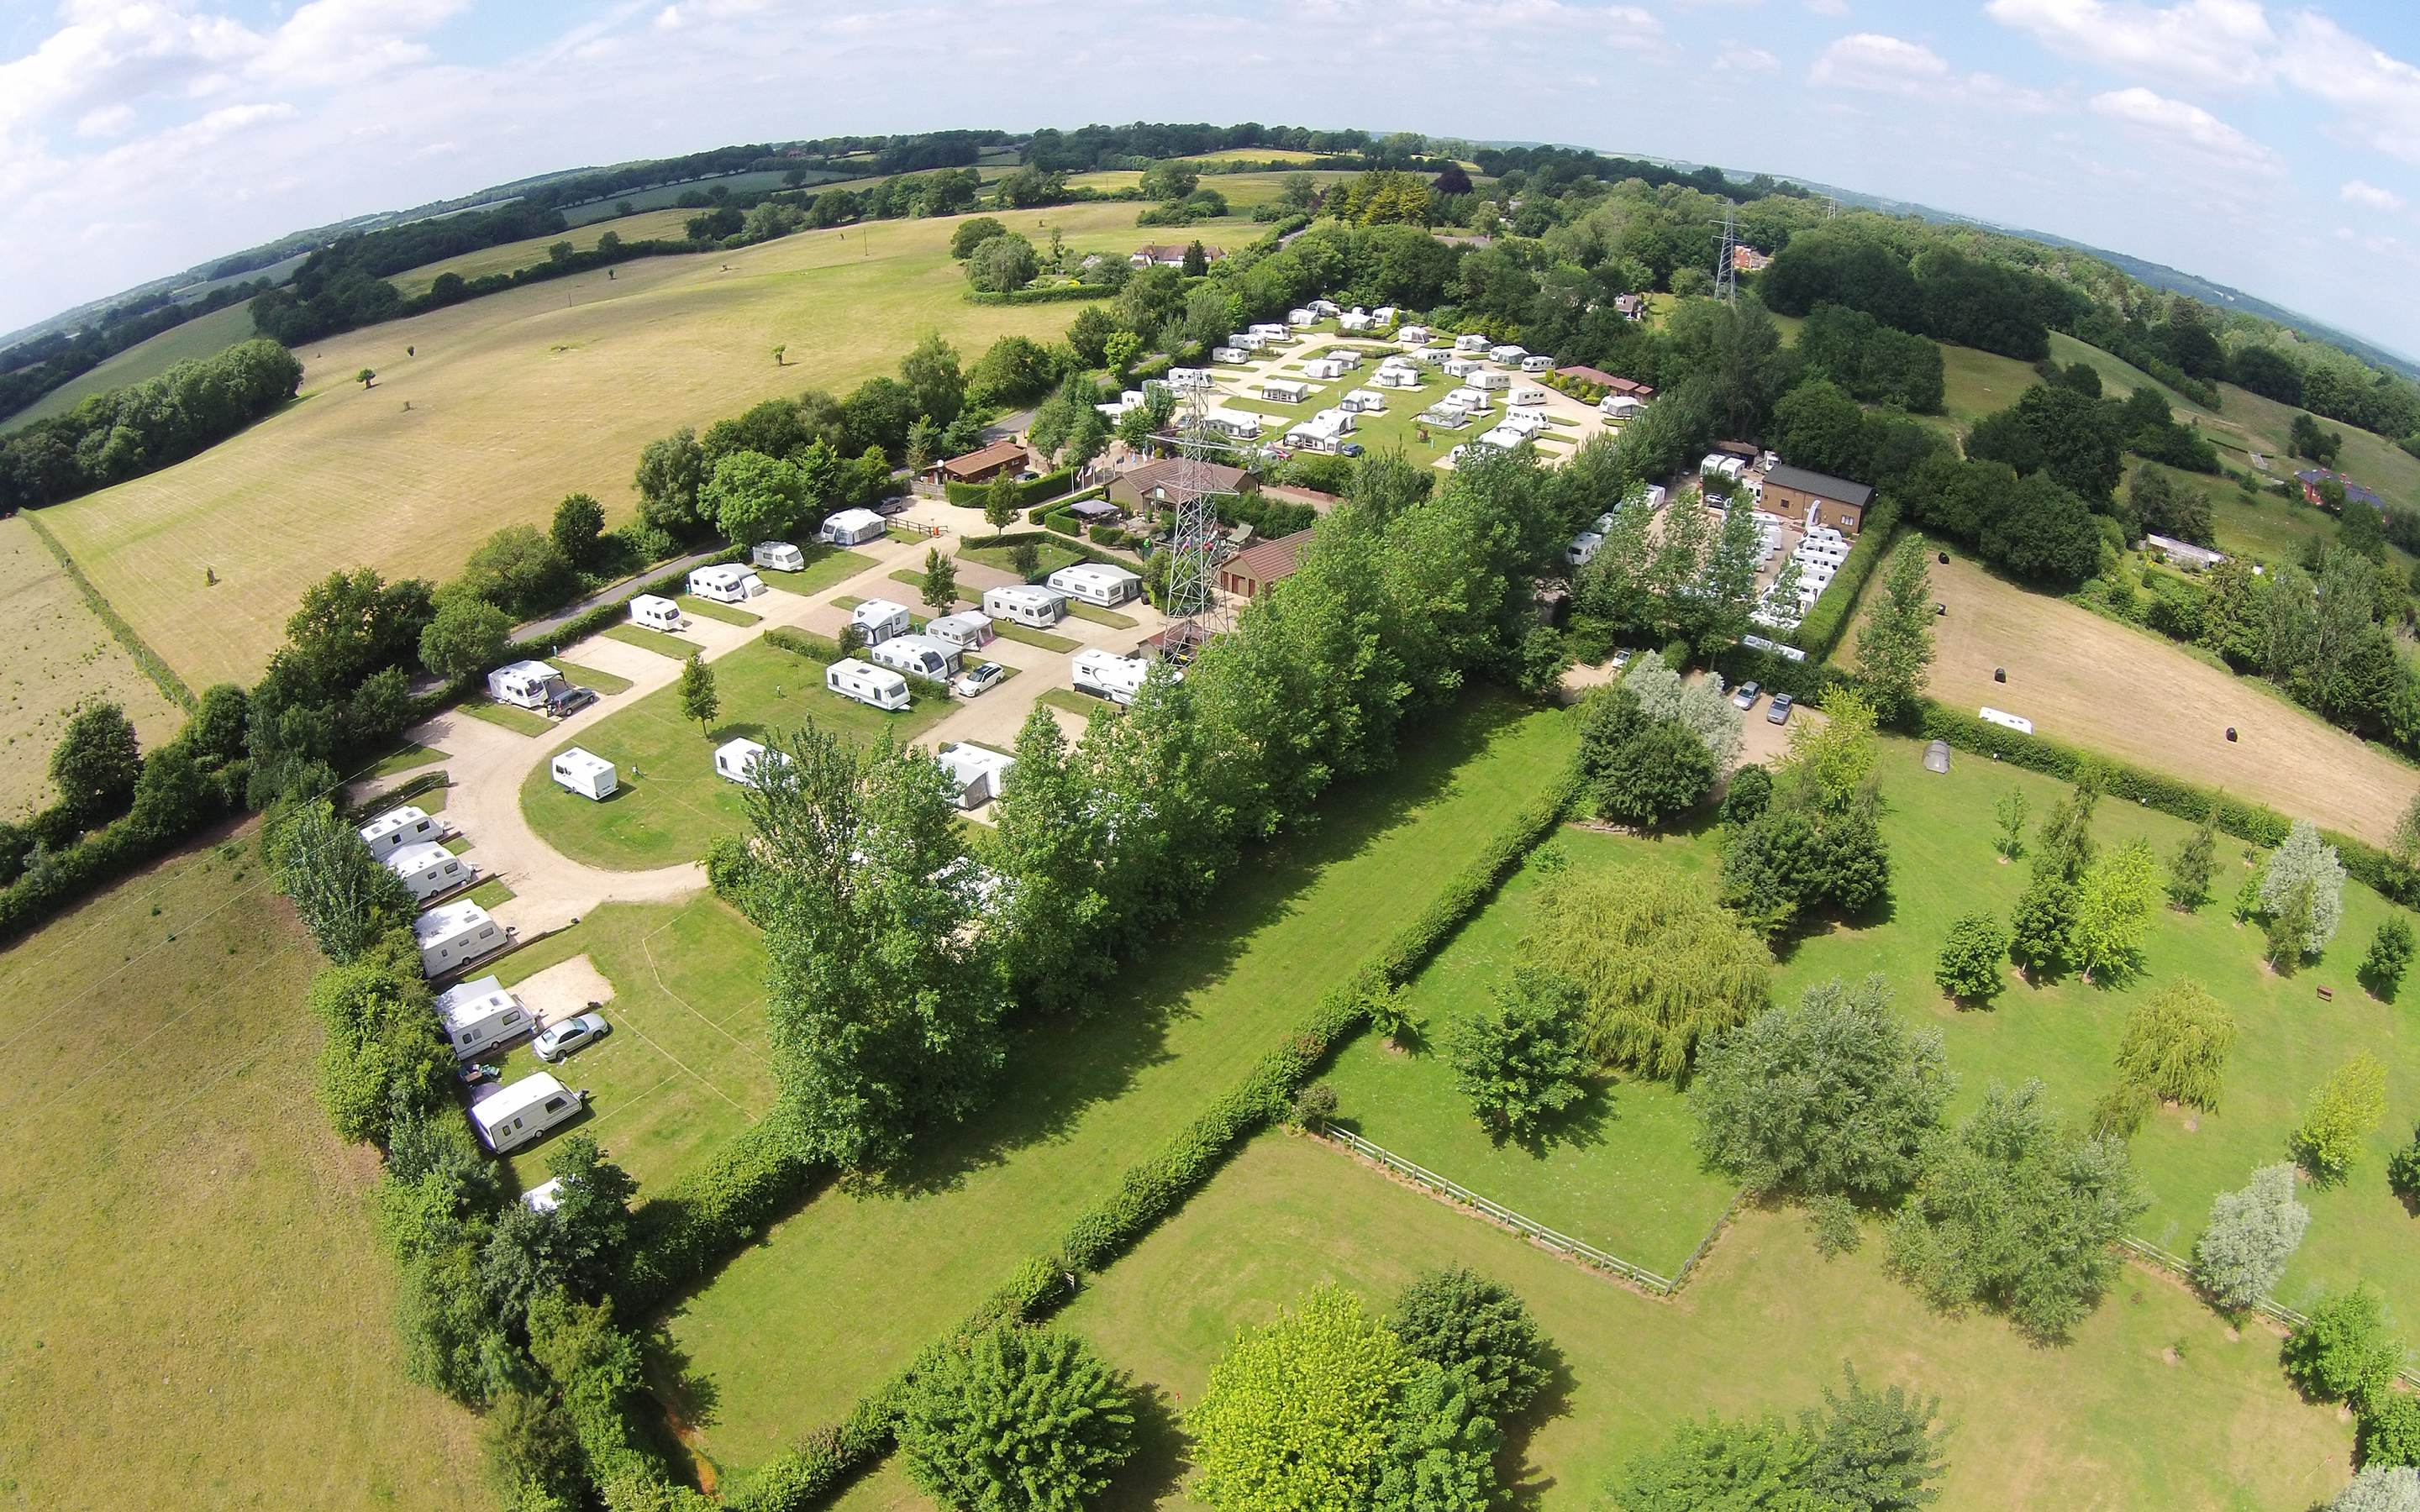 Luxury Camping Pitches Available